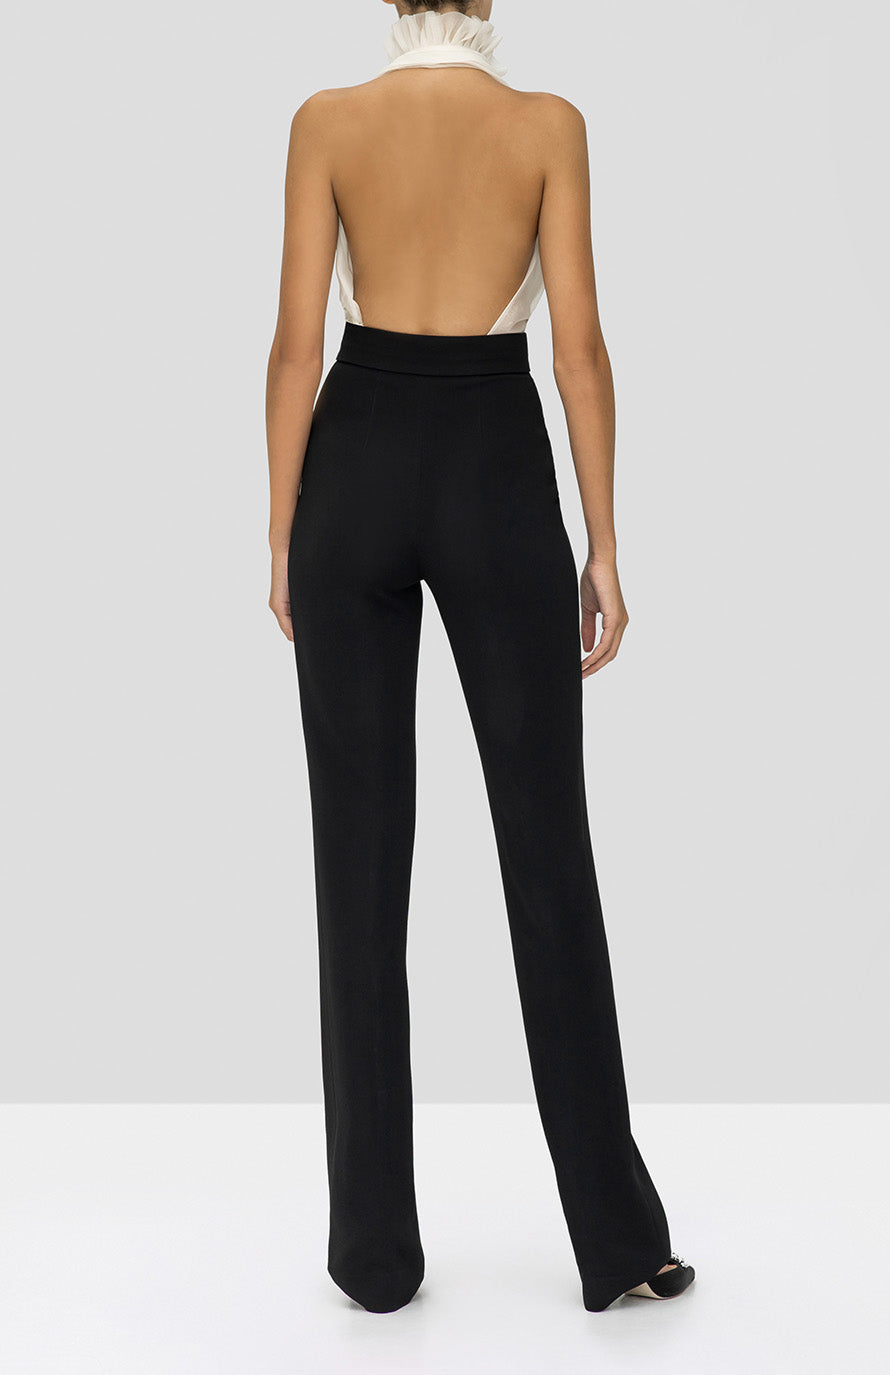 Alexis Arabel Top in Off White and Lofton Pant in Black from the Holiday 2019 Ready To Wear Collection - Rear View